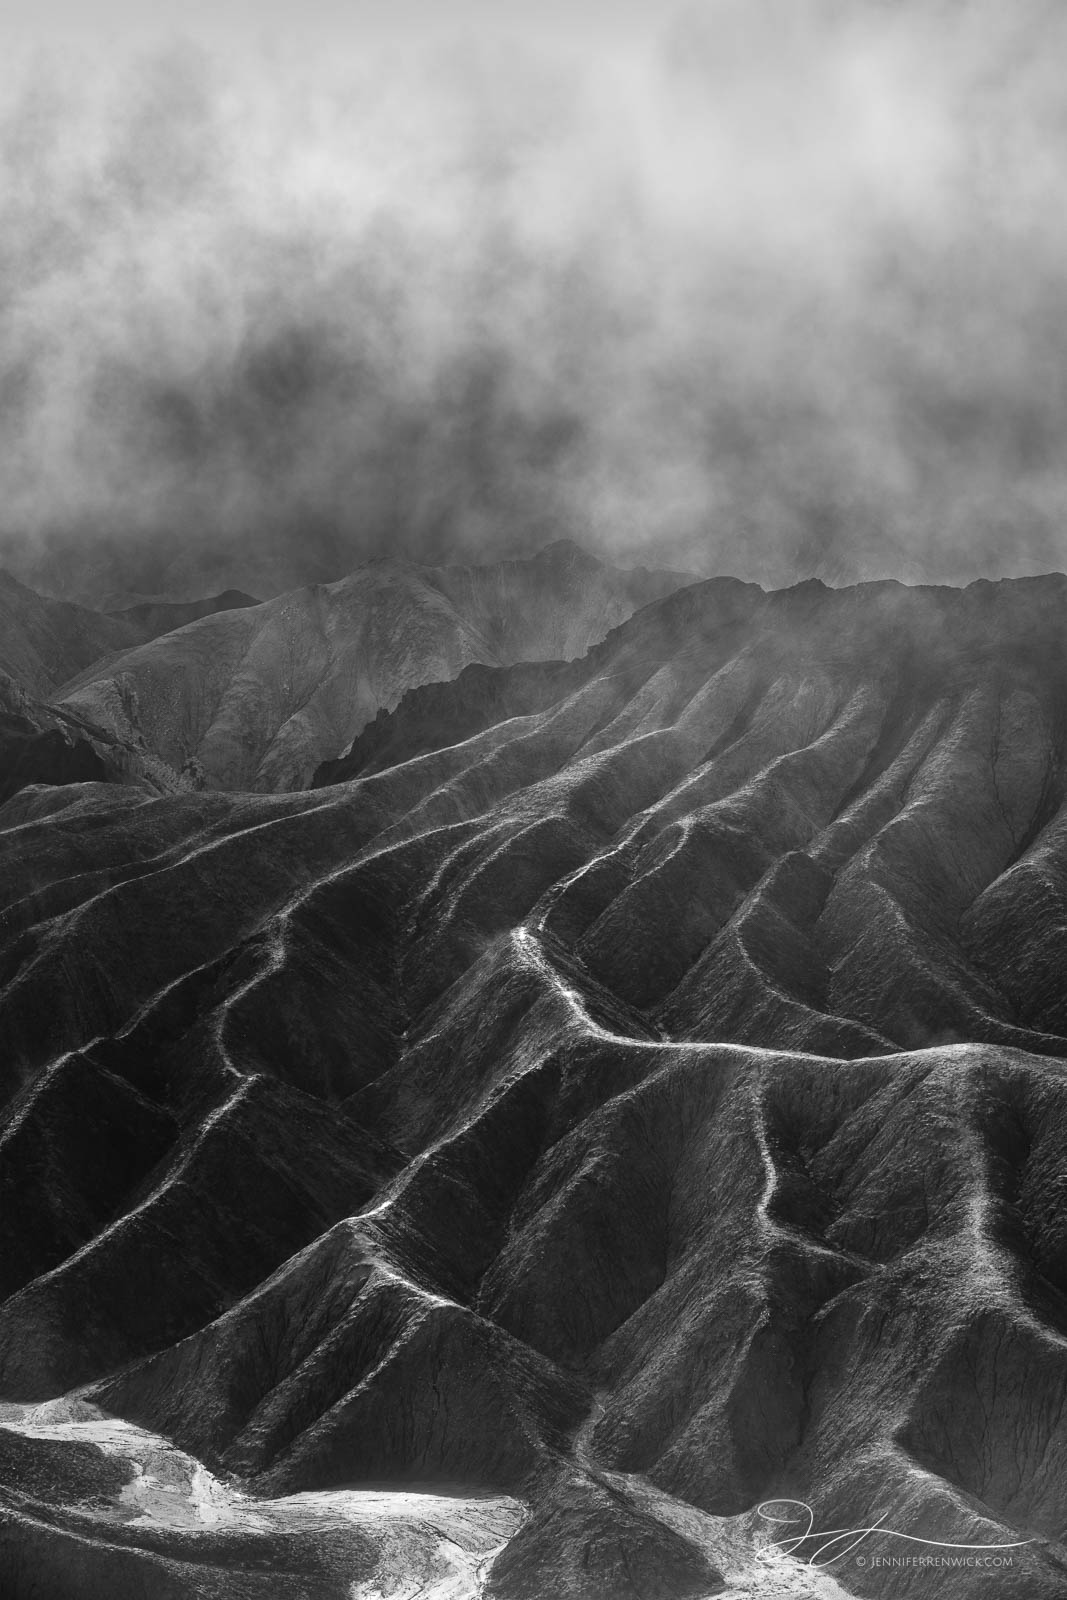 Sun breaks through to highlight the ridges as the fog clears in the badlands of Death Valley National Park.  This image is part...